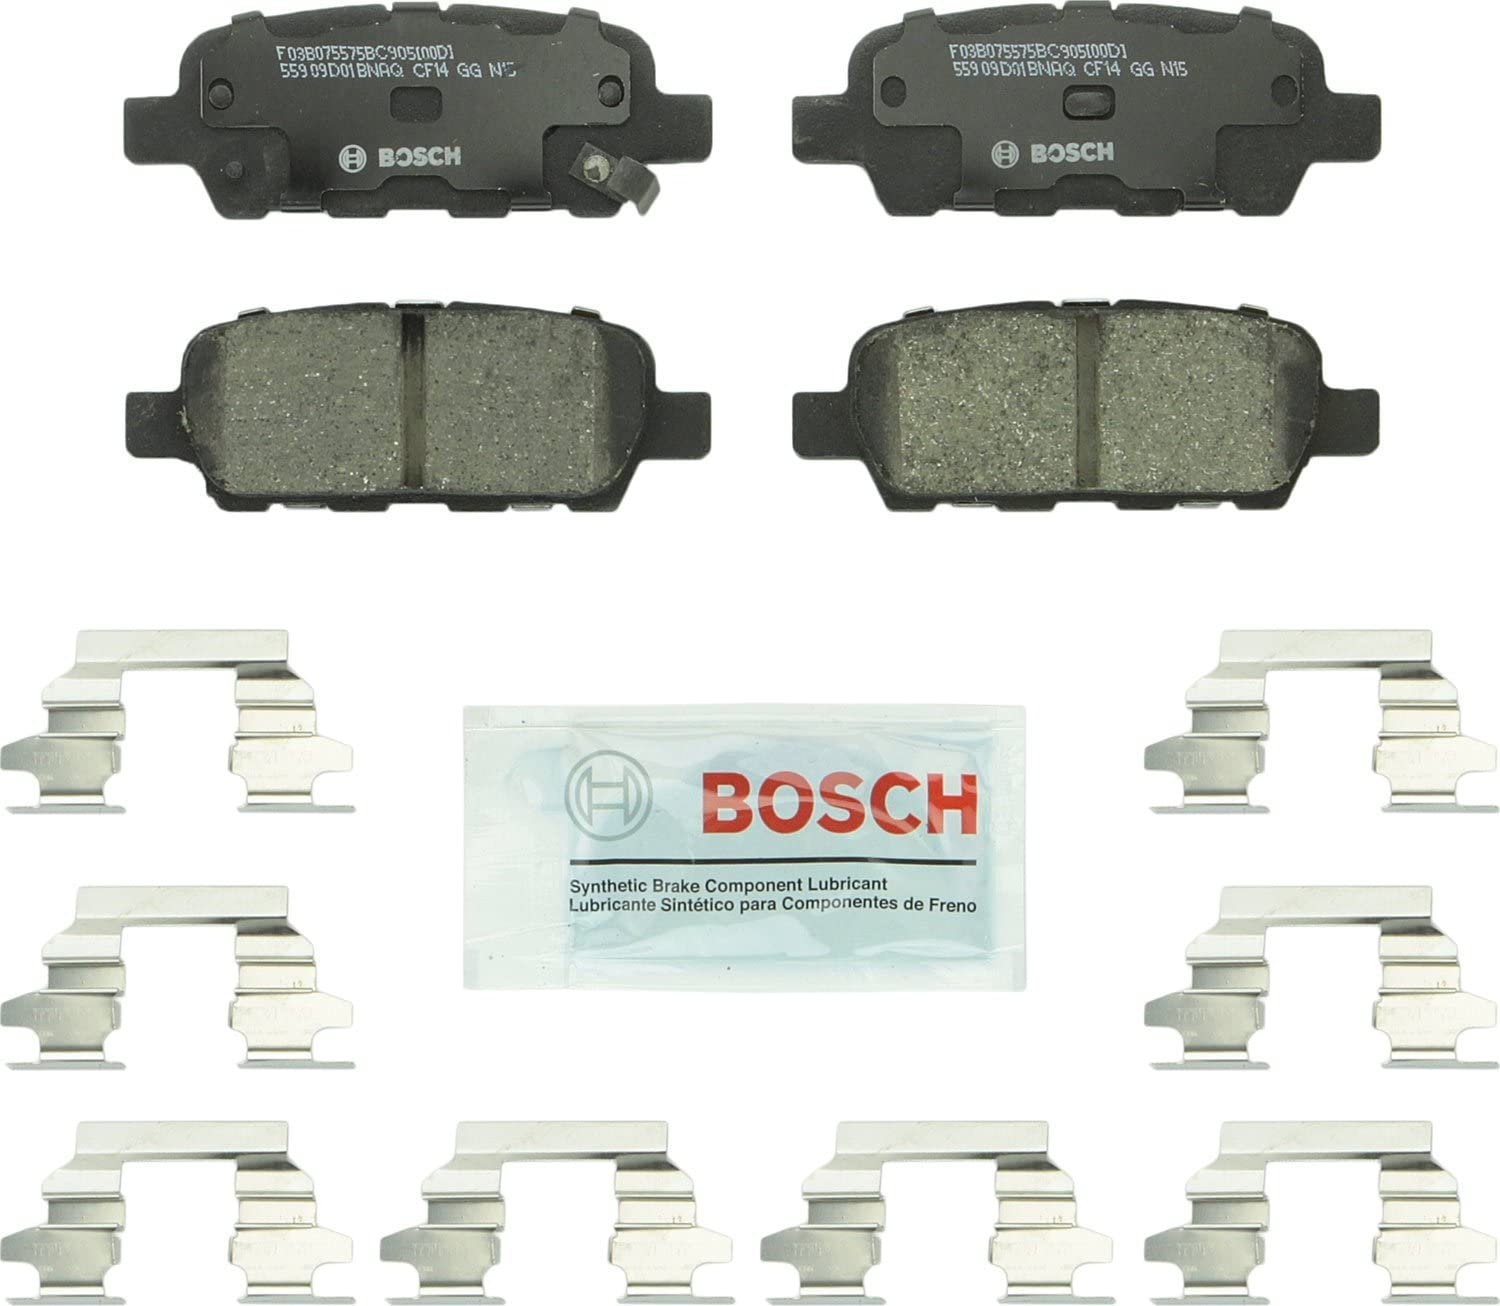 Bosch QuietCast Ceramic Brake Disc Pads